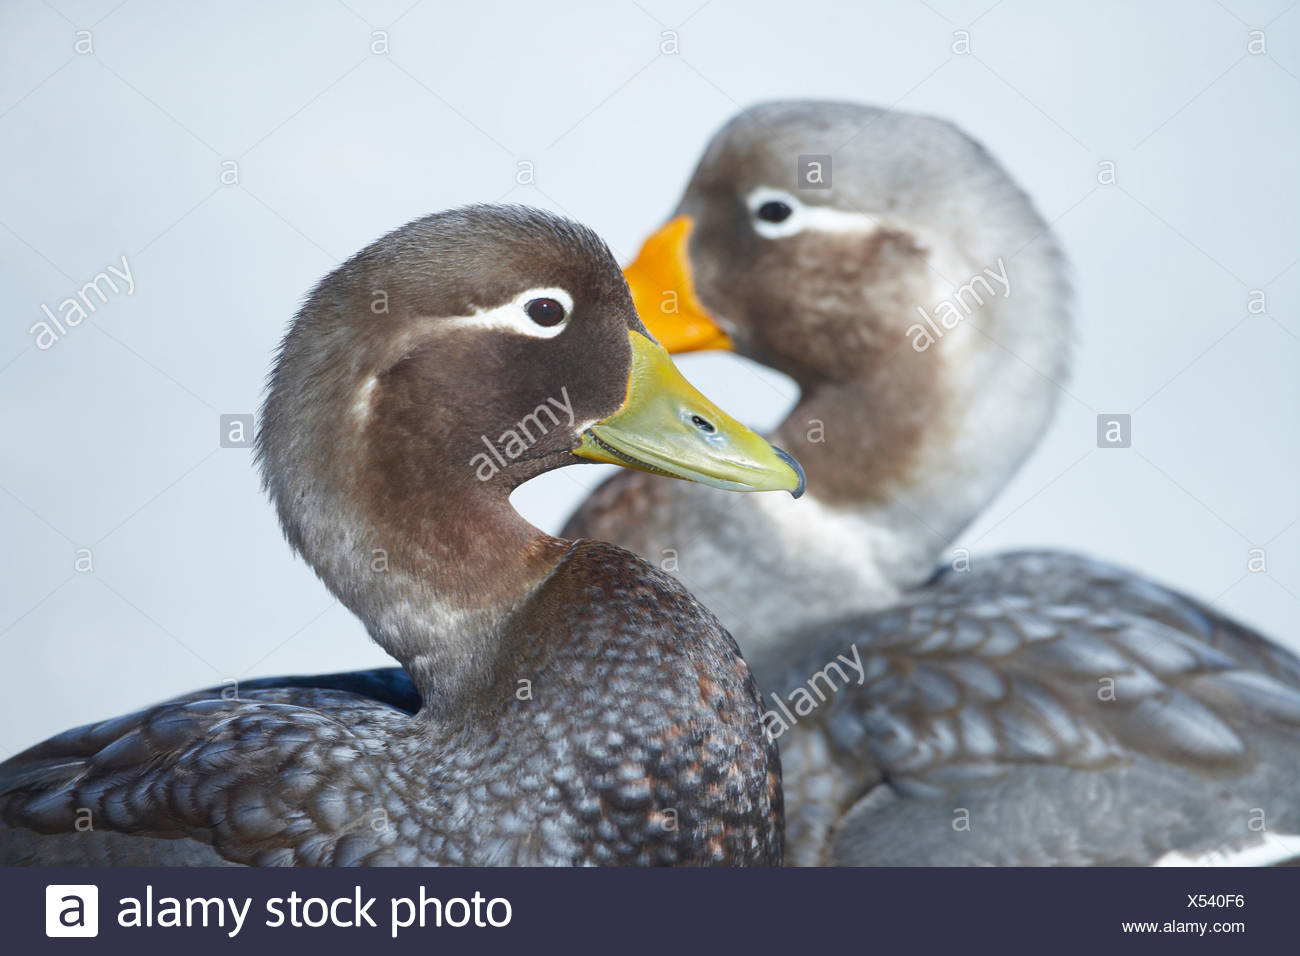 Steamer duck (Tachyeres brachypterus) pair, Falkland Islands - Stock Image